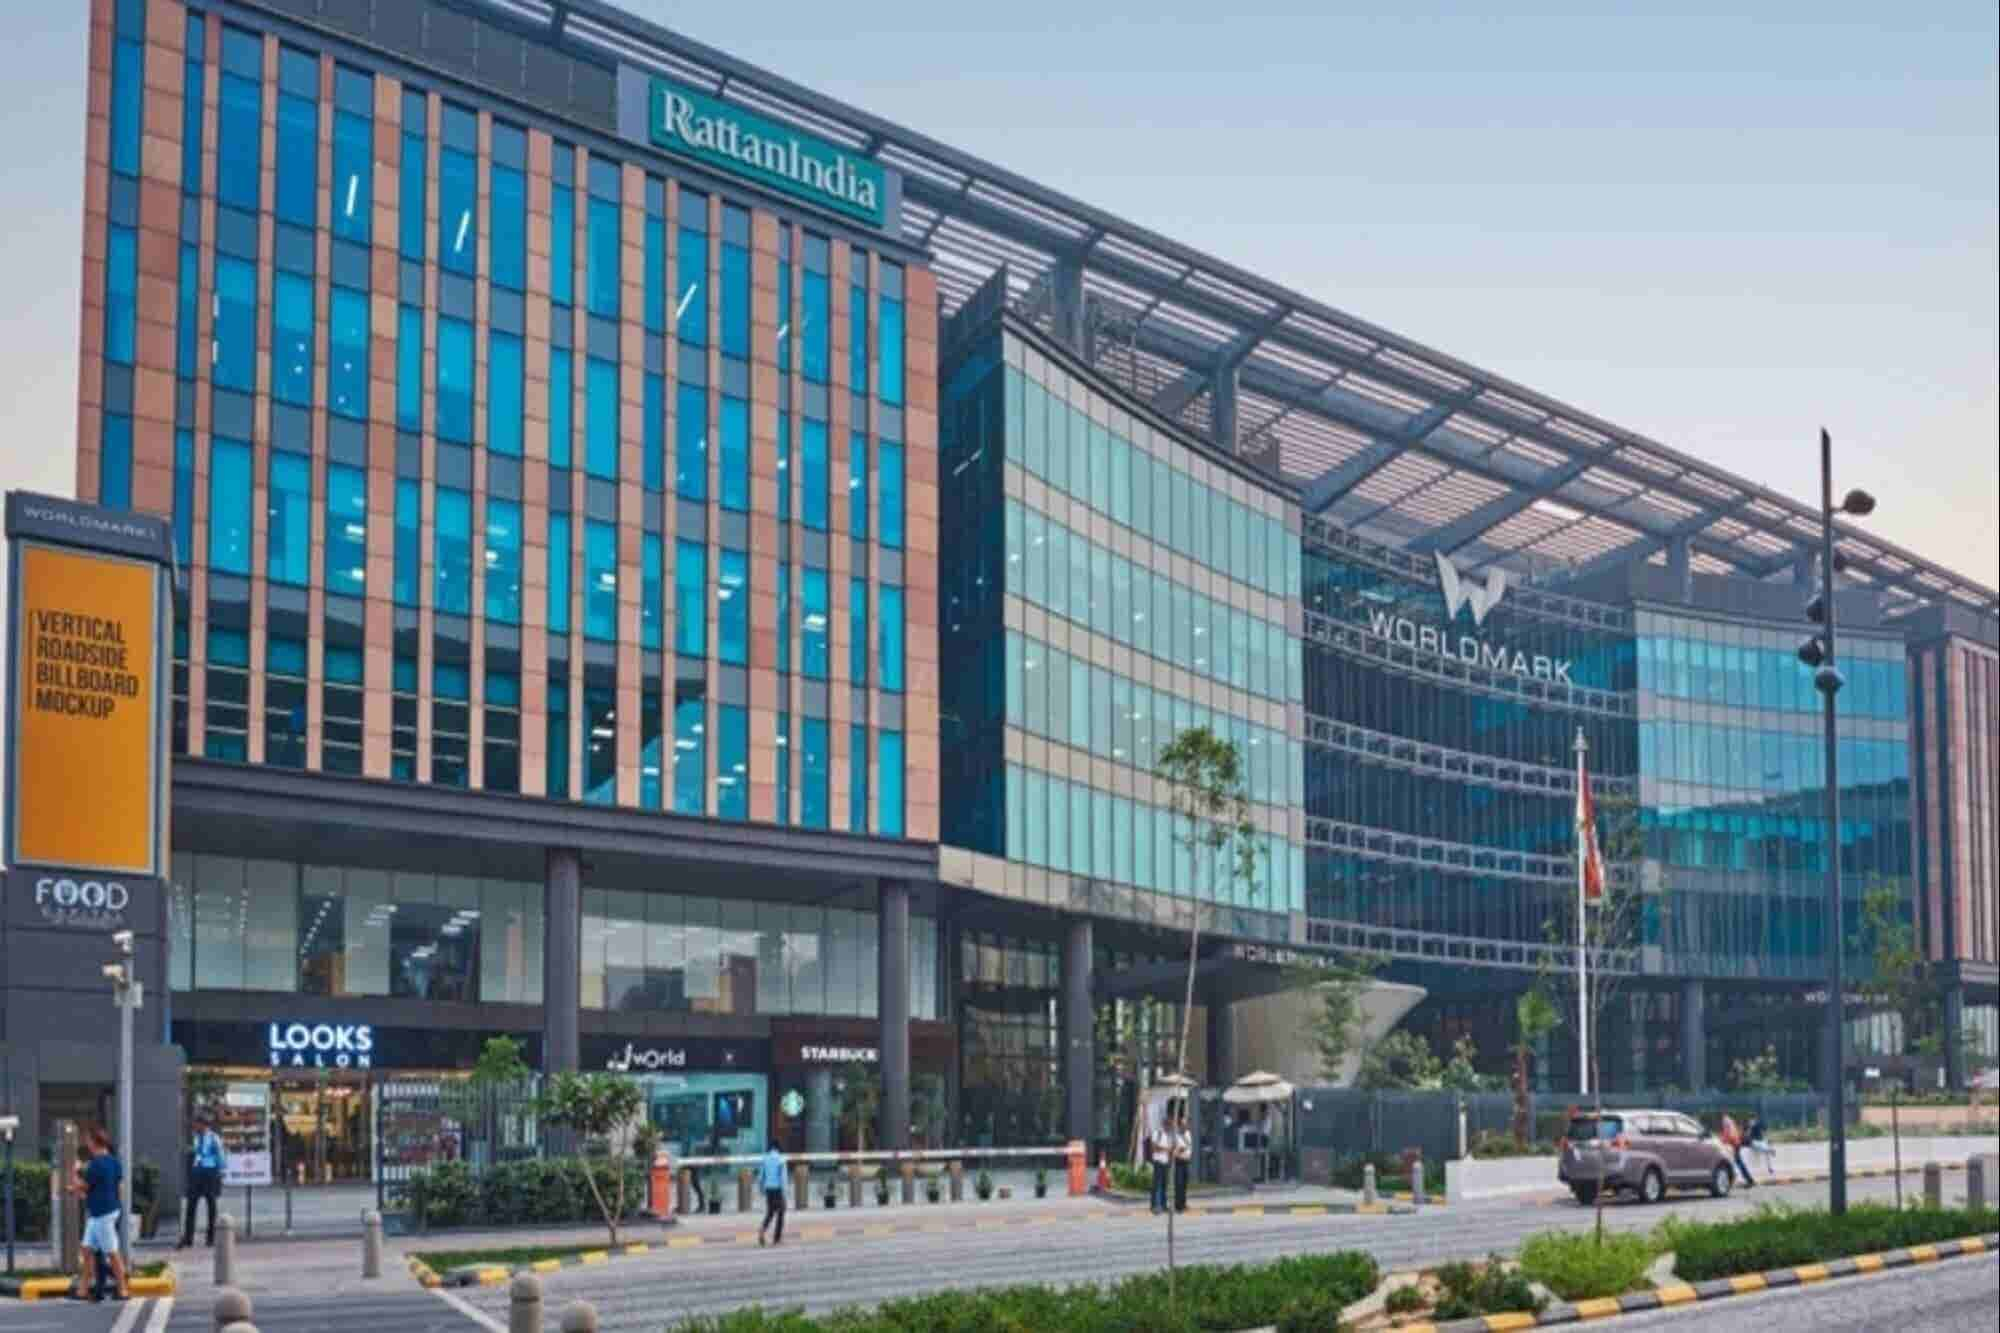 Restaurant Businesses are Seeing Aerocity as The Prime Location Ingredient in Delhi